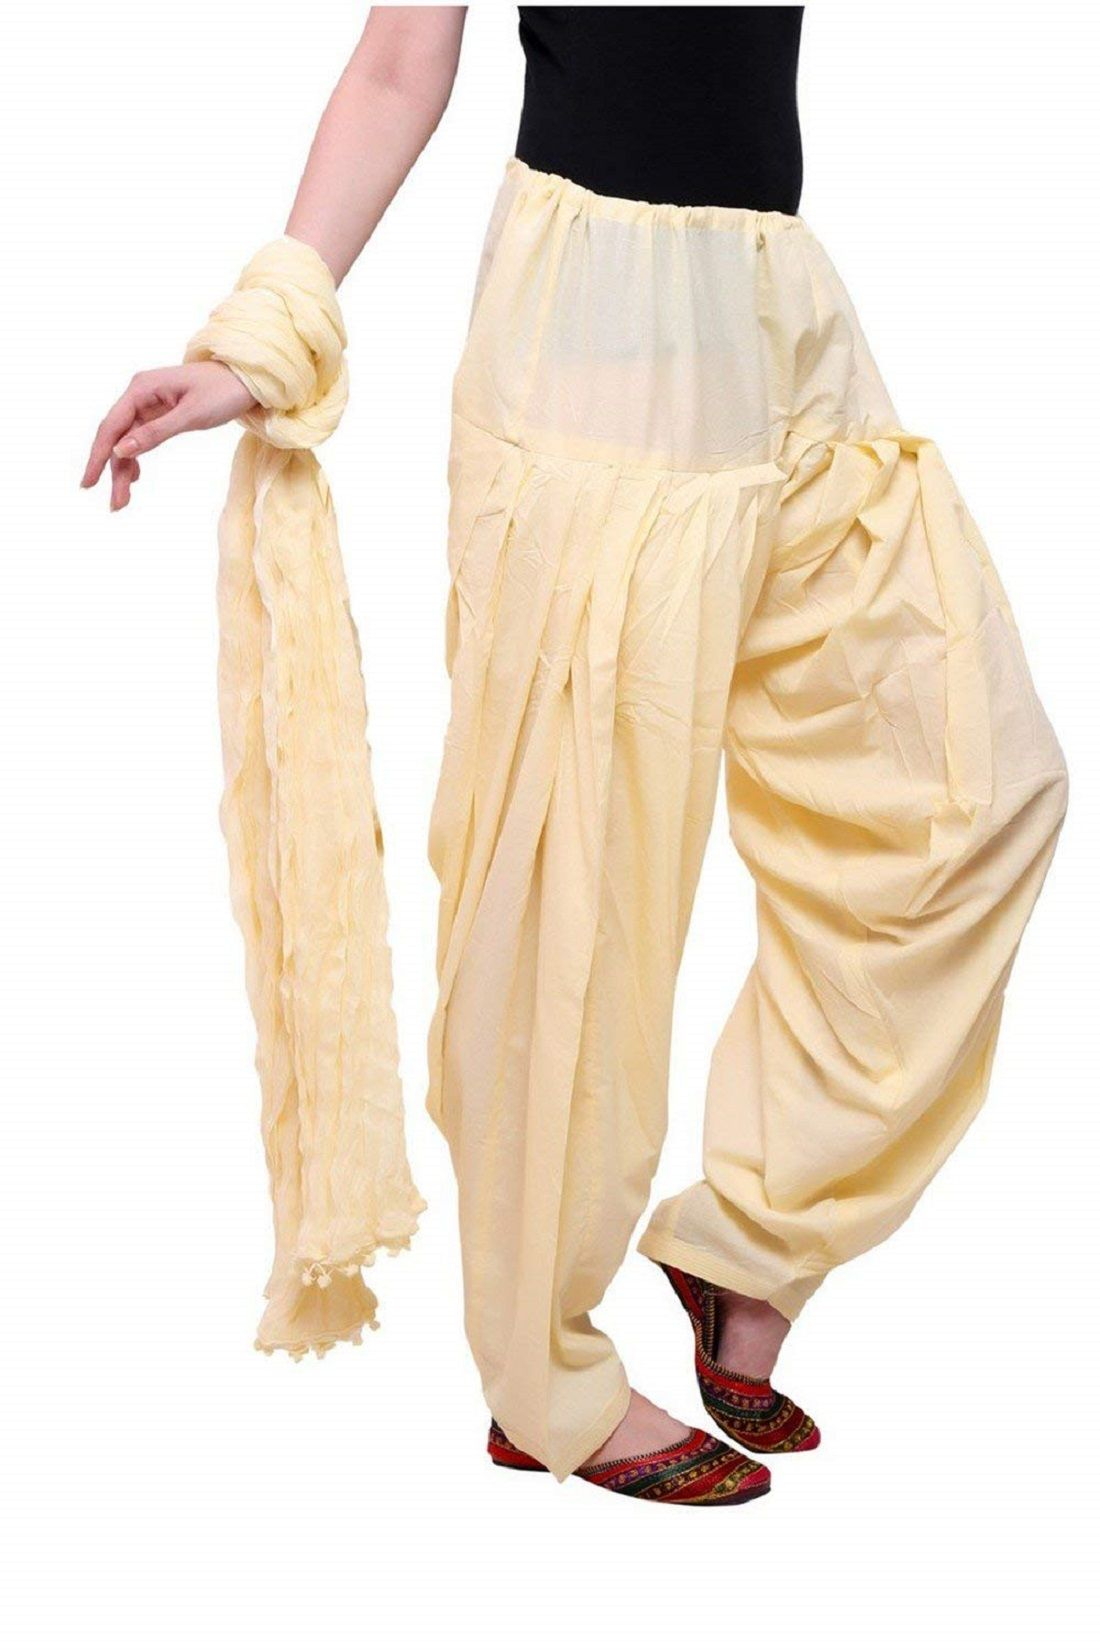 Kuber Industries Cotton Patiala salwar with Dupatta Set (Beige & Cream)